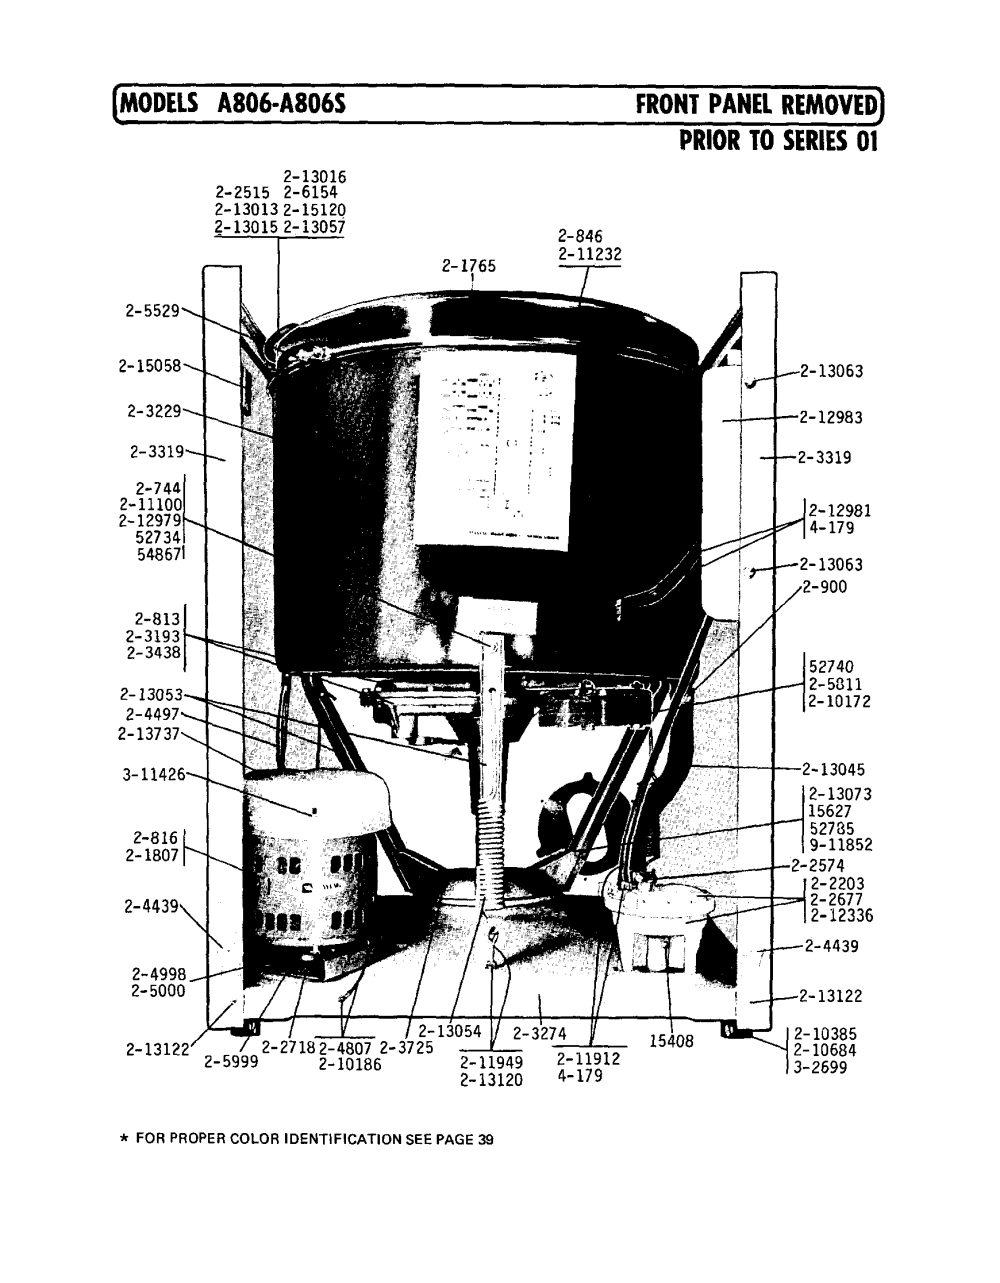 medium resolution of a806 washer front panel removed prior to series 01 parts diagram